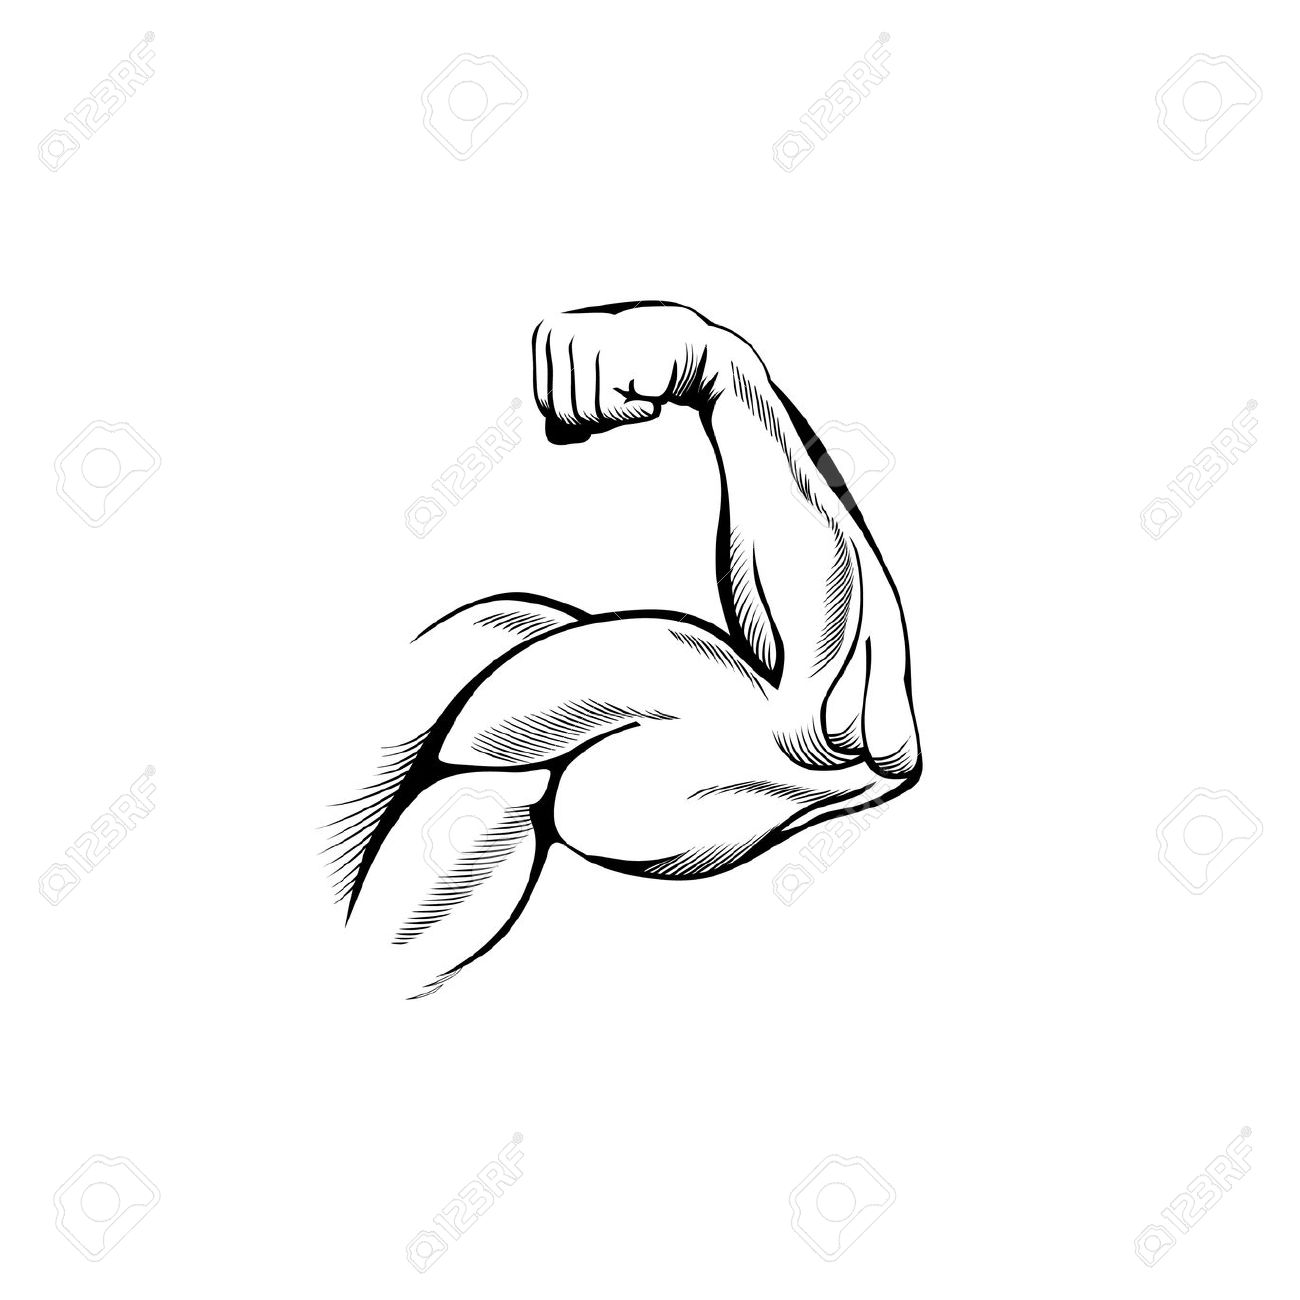 Muscle Arm Drawing